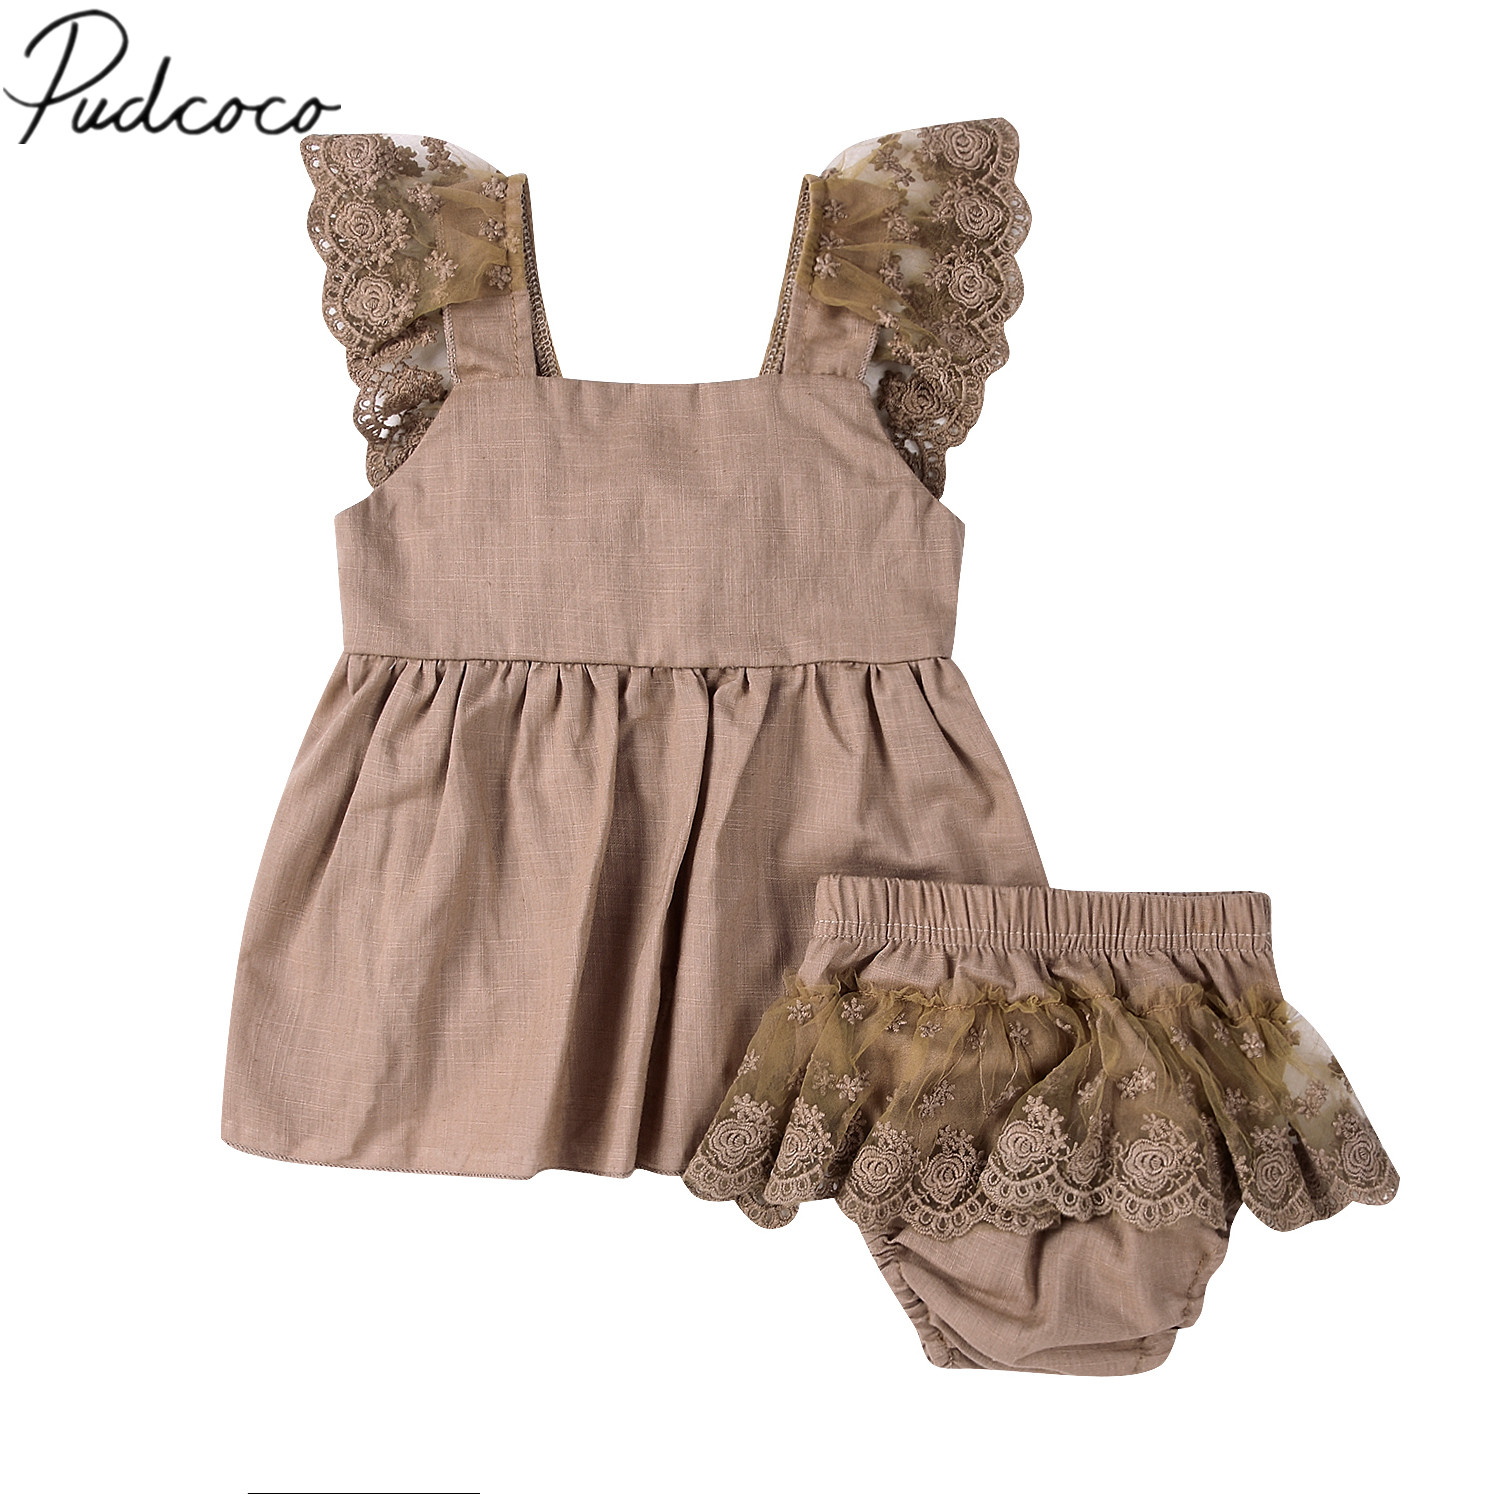 2018 Brand New Toddler Infant Newborn Baby Girls Outfits Clothes Lace Top T-shirt Dress+Pants Bottoms 2Pcs Set Chiffon Clothes